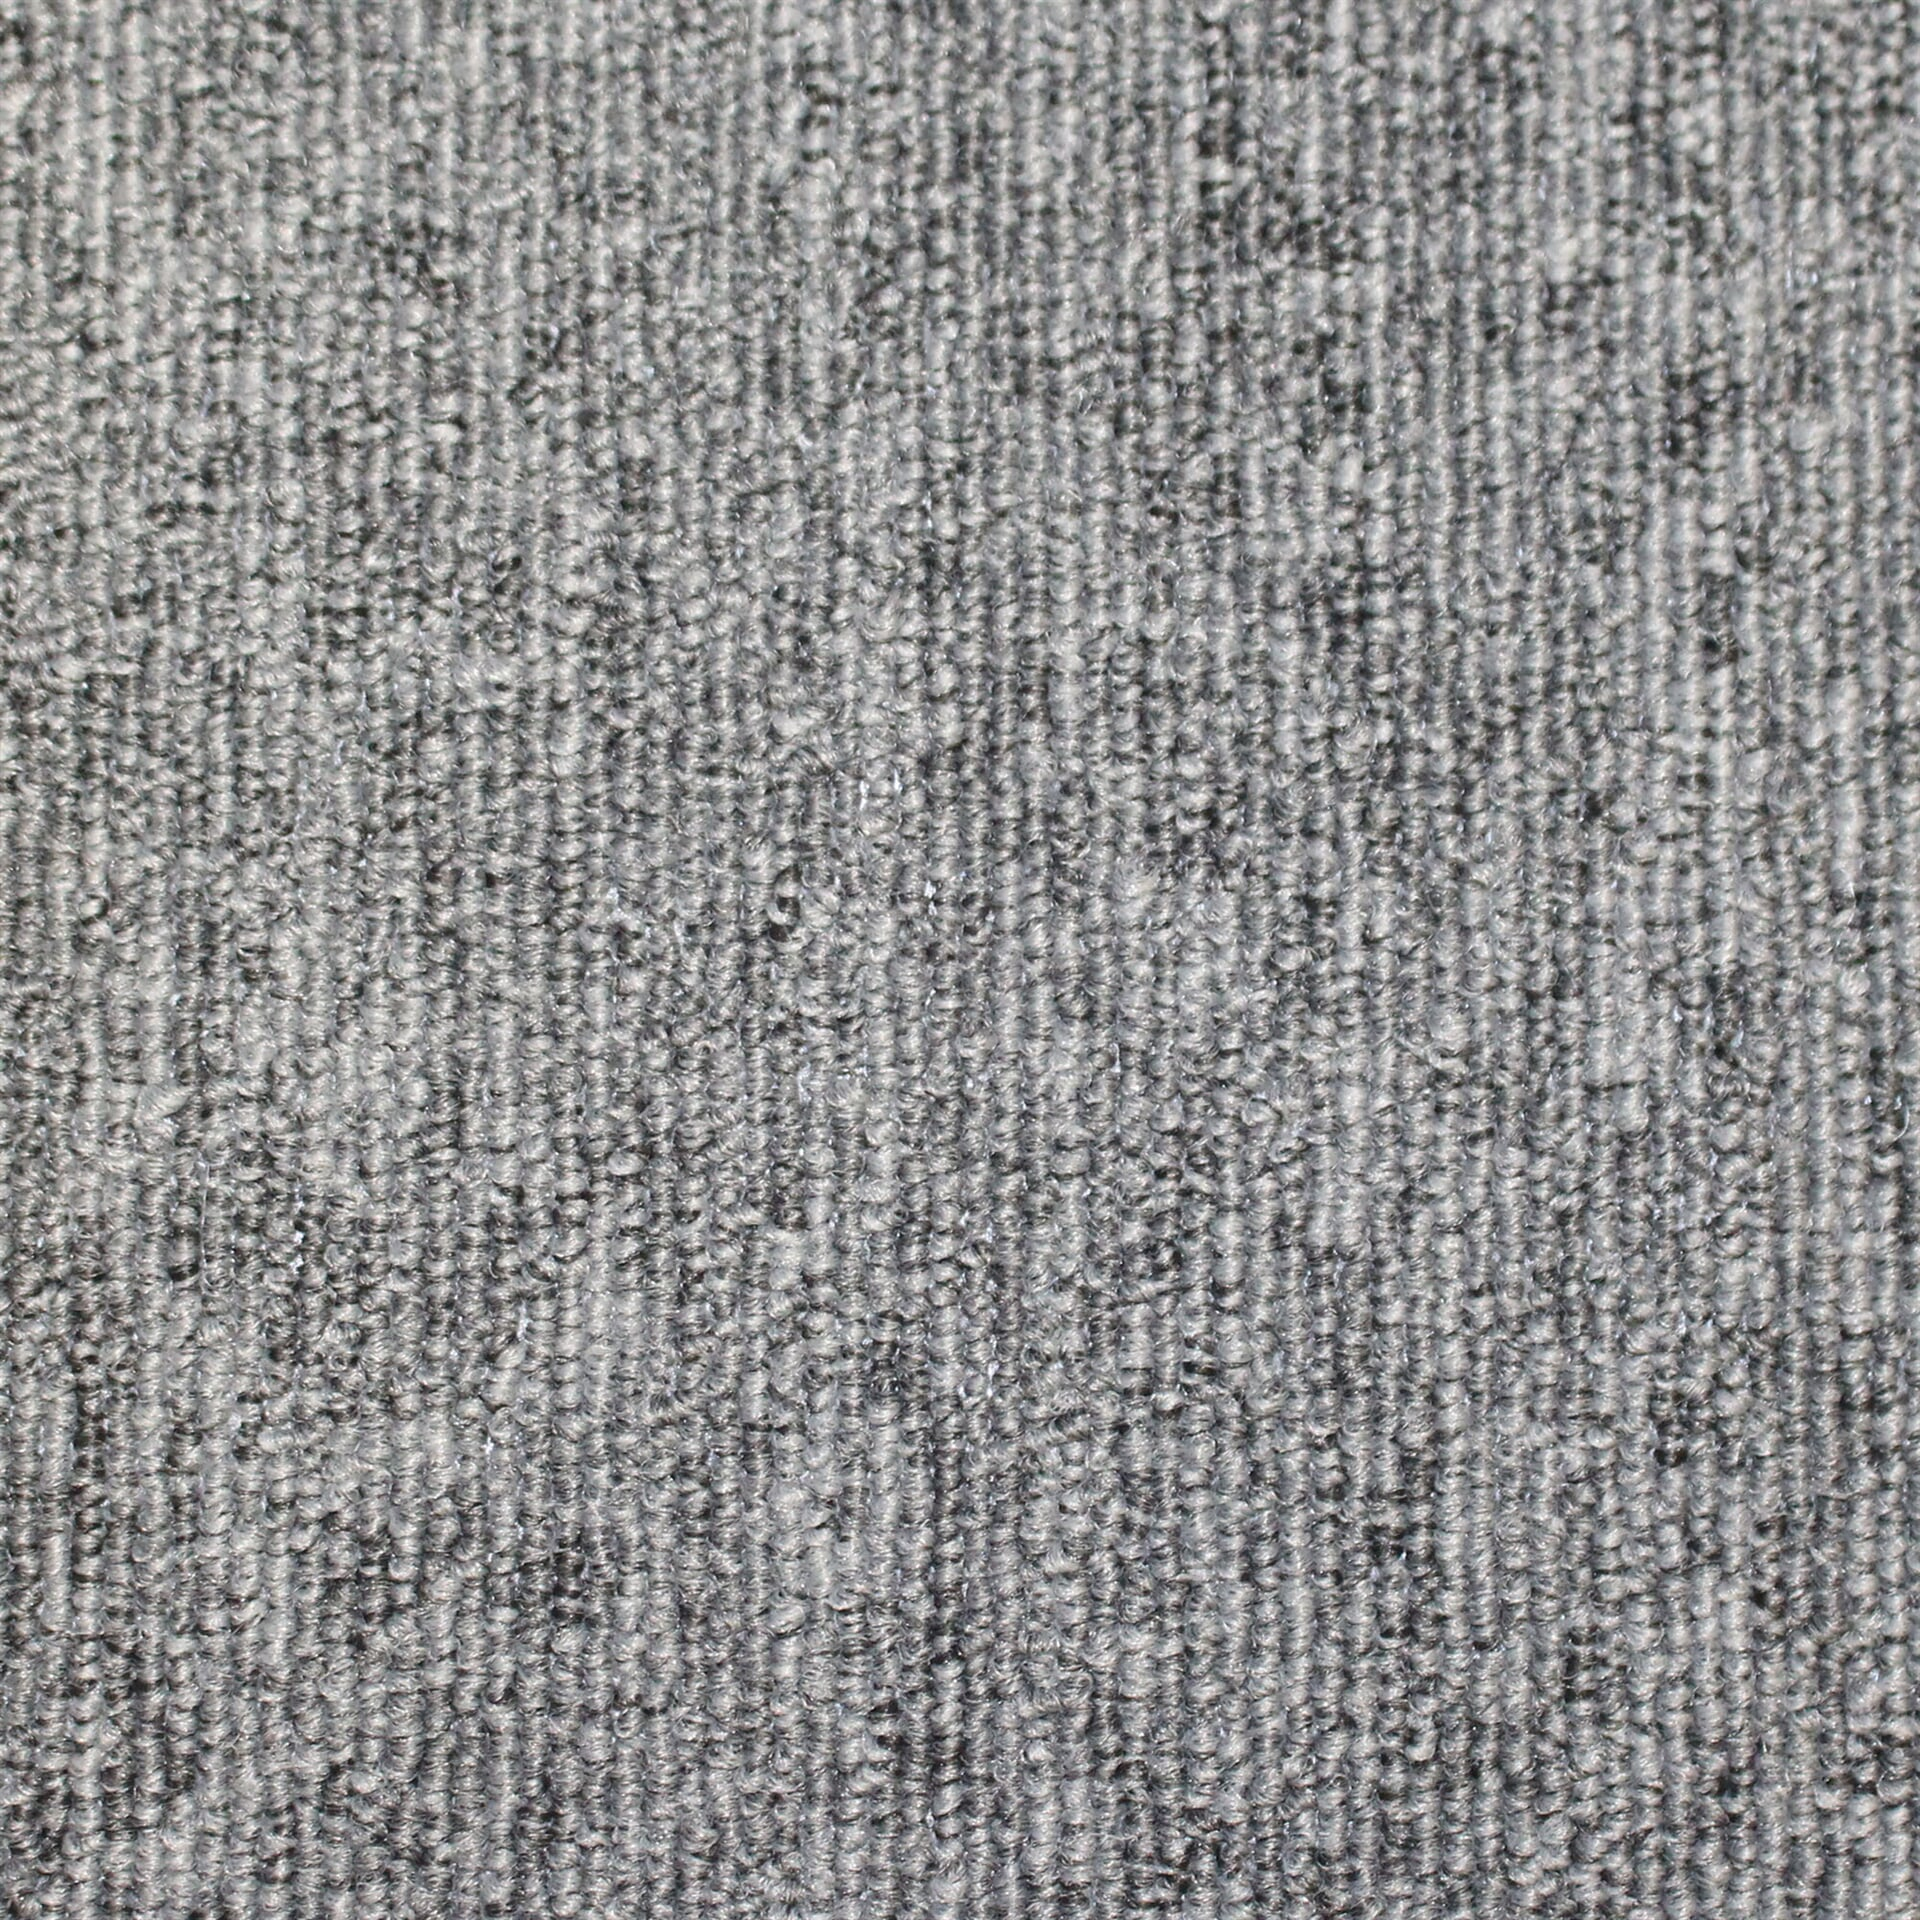 Genstock Align carpet in Pewter from General Floor